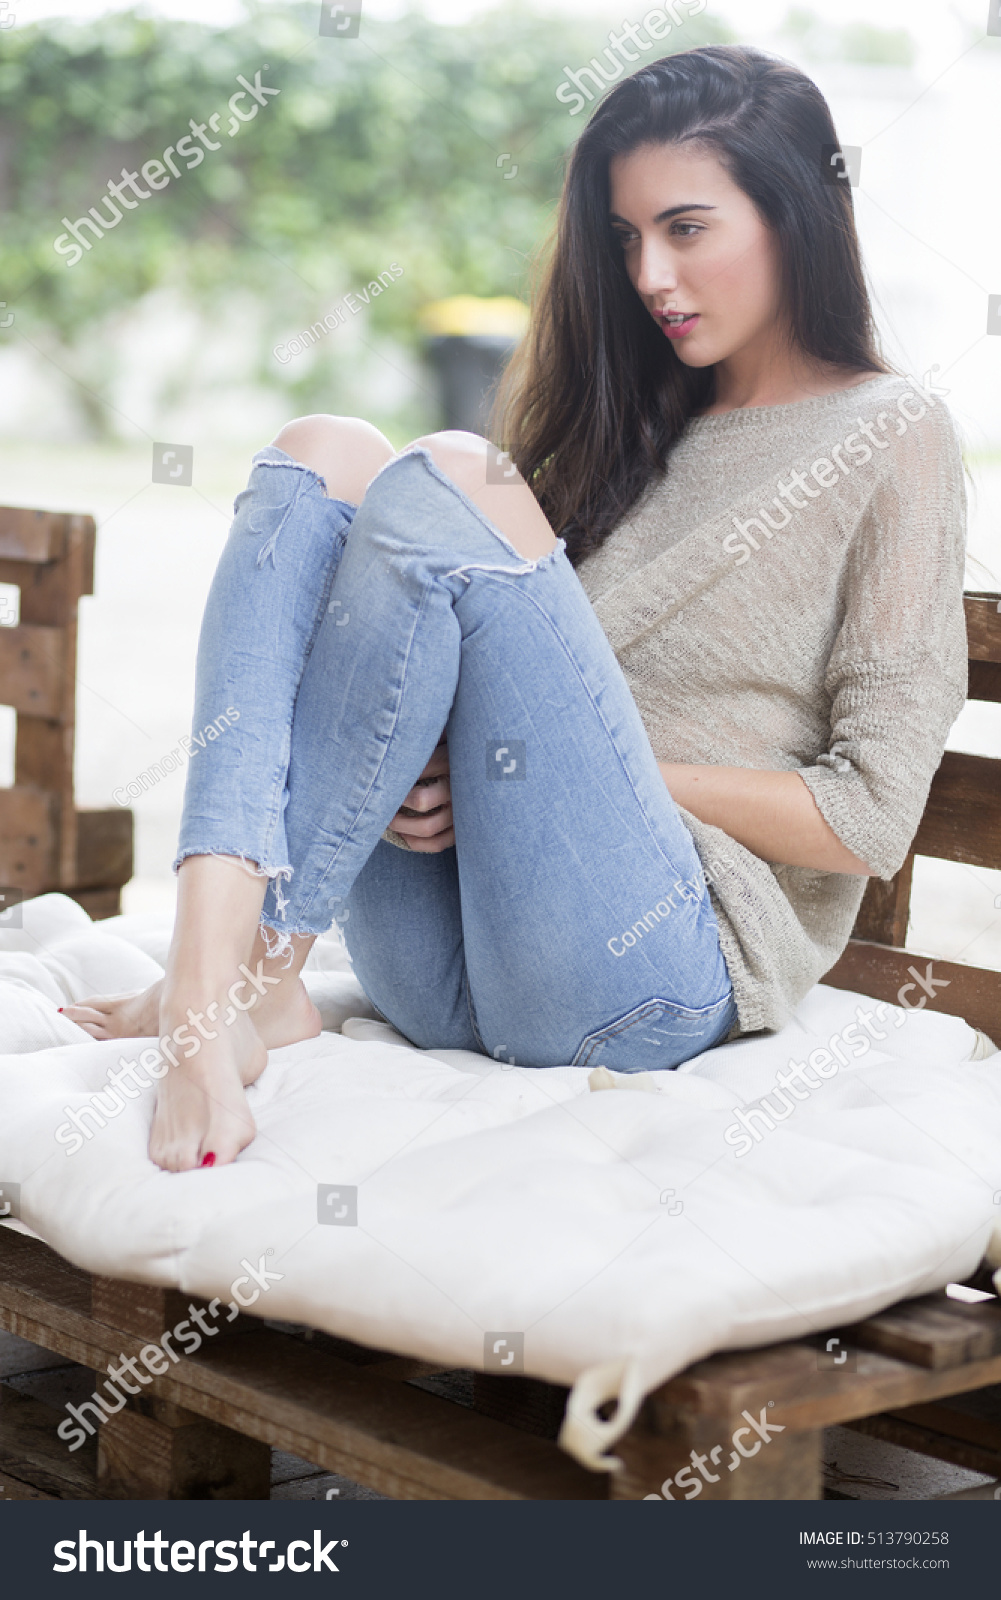 woman relaxing home stock photo 513790258 shutterstock. Black Bedroom Furniture Sets. Home Design Ideas